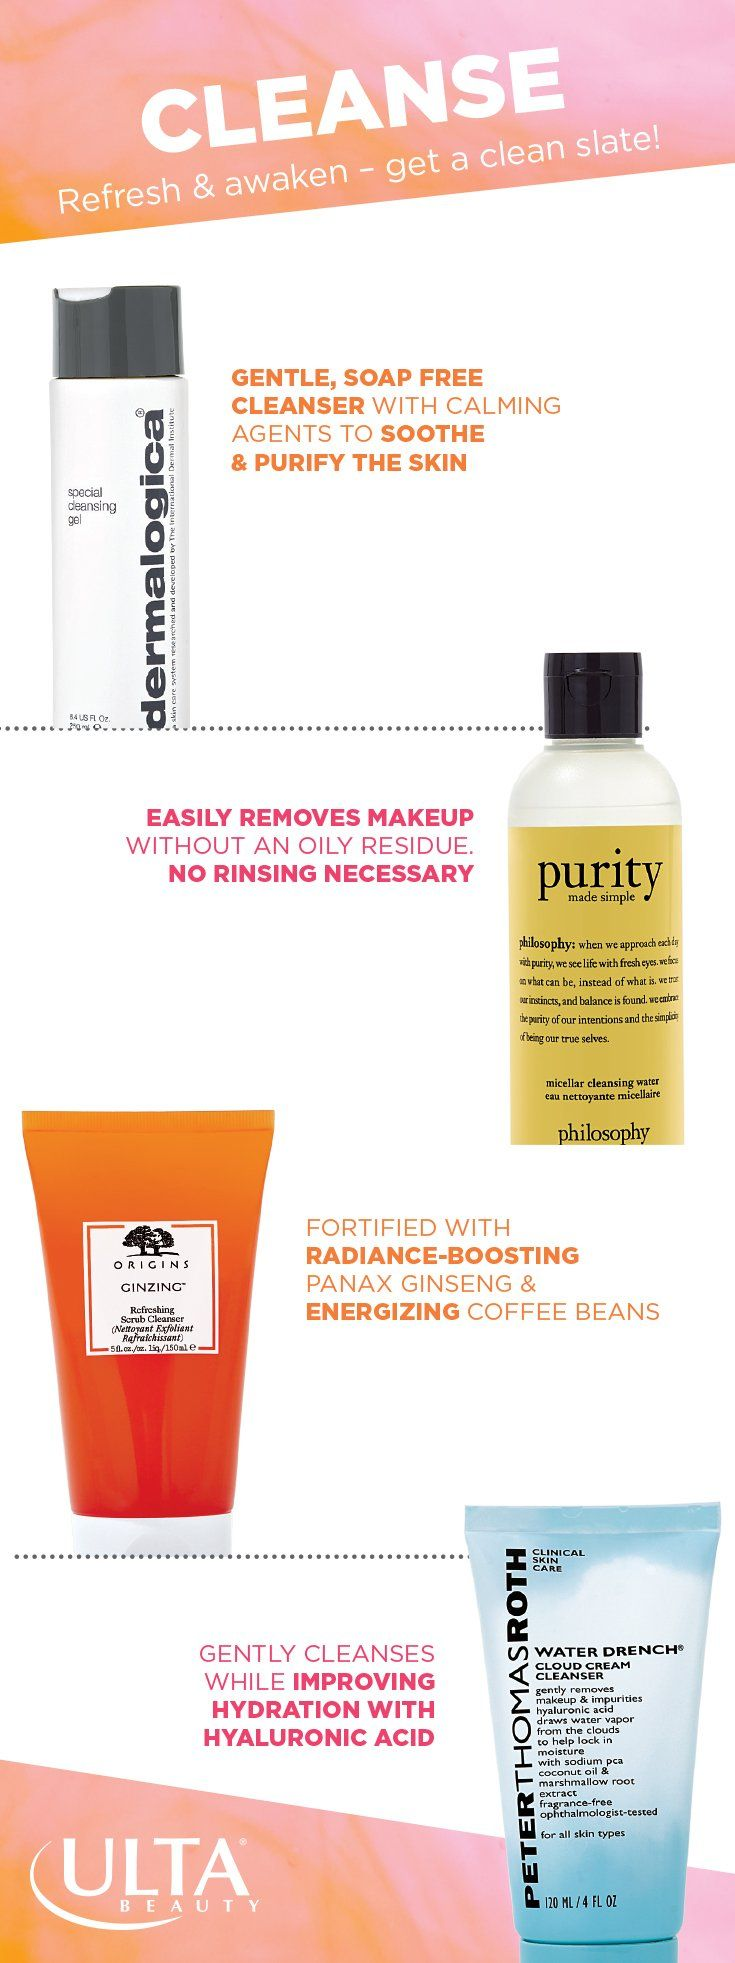 Start with a clean slate. Pick a cleanser based on your skin type and what you're looking for. Some of our top picks: Dermalogica Special Cleansing Gel—a soap-free cleanser that soothes and purifies. Philosophy Purity (an Ulta Beauty exclusive!)—their new micellar water to remove makeup and precleanse. Origins GinZing Refreshing Scrub Cleanser—with radiance-boosting ginseng and energizing coffee beans. Peter Thomas Roth Water Drench Cloud Cream Cleanser, with hydrating hyaluronic acid.